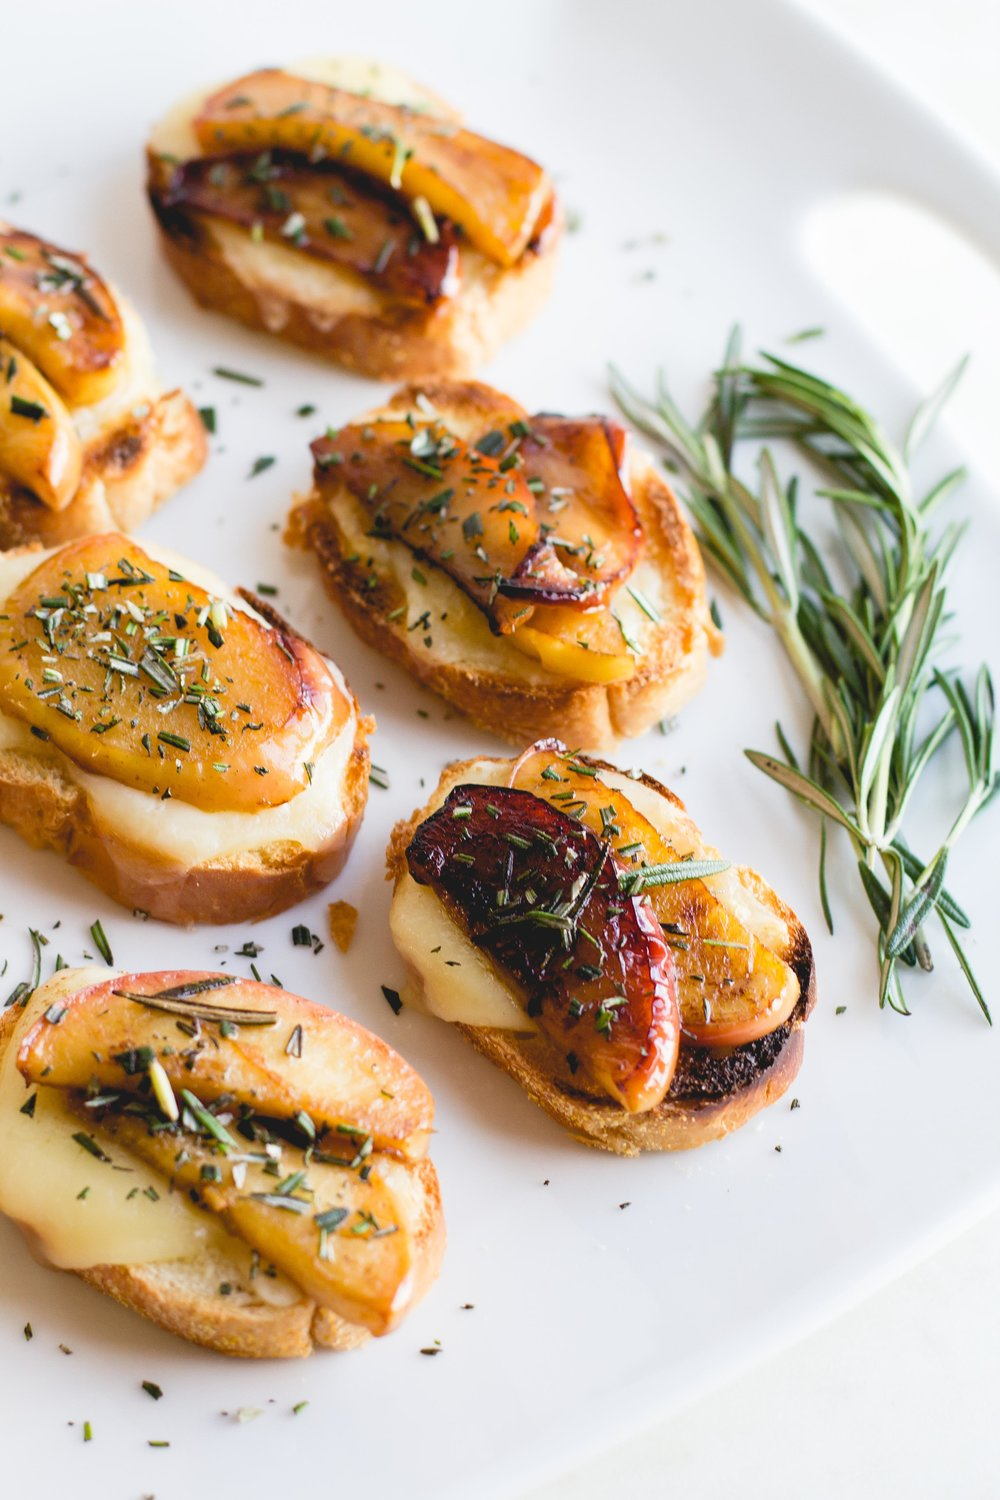 Crostini with Caramelized Apples, Fontina + Rosemary